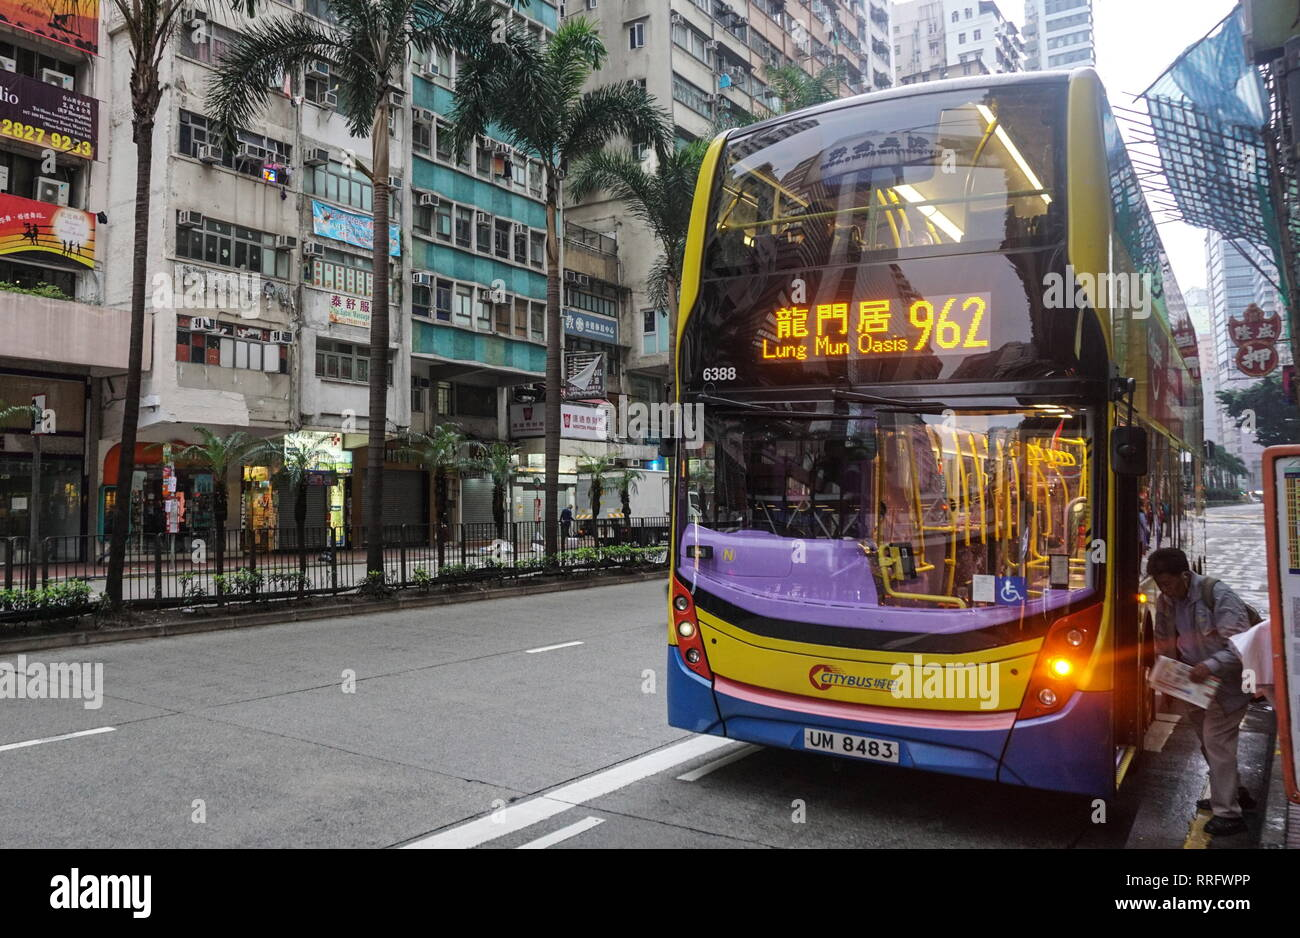 HONG KONG, CHINA - FEBRUARY 26, 2019: A double decker bus in the Hong Kong Special Administrative Region (HKSAR) of the People's Republic of China. Alexander Shcherbak/TASS - Stock Image